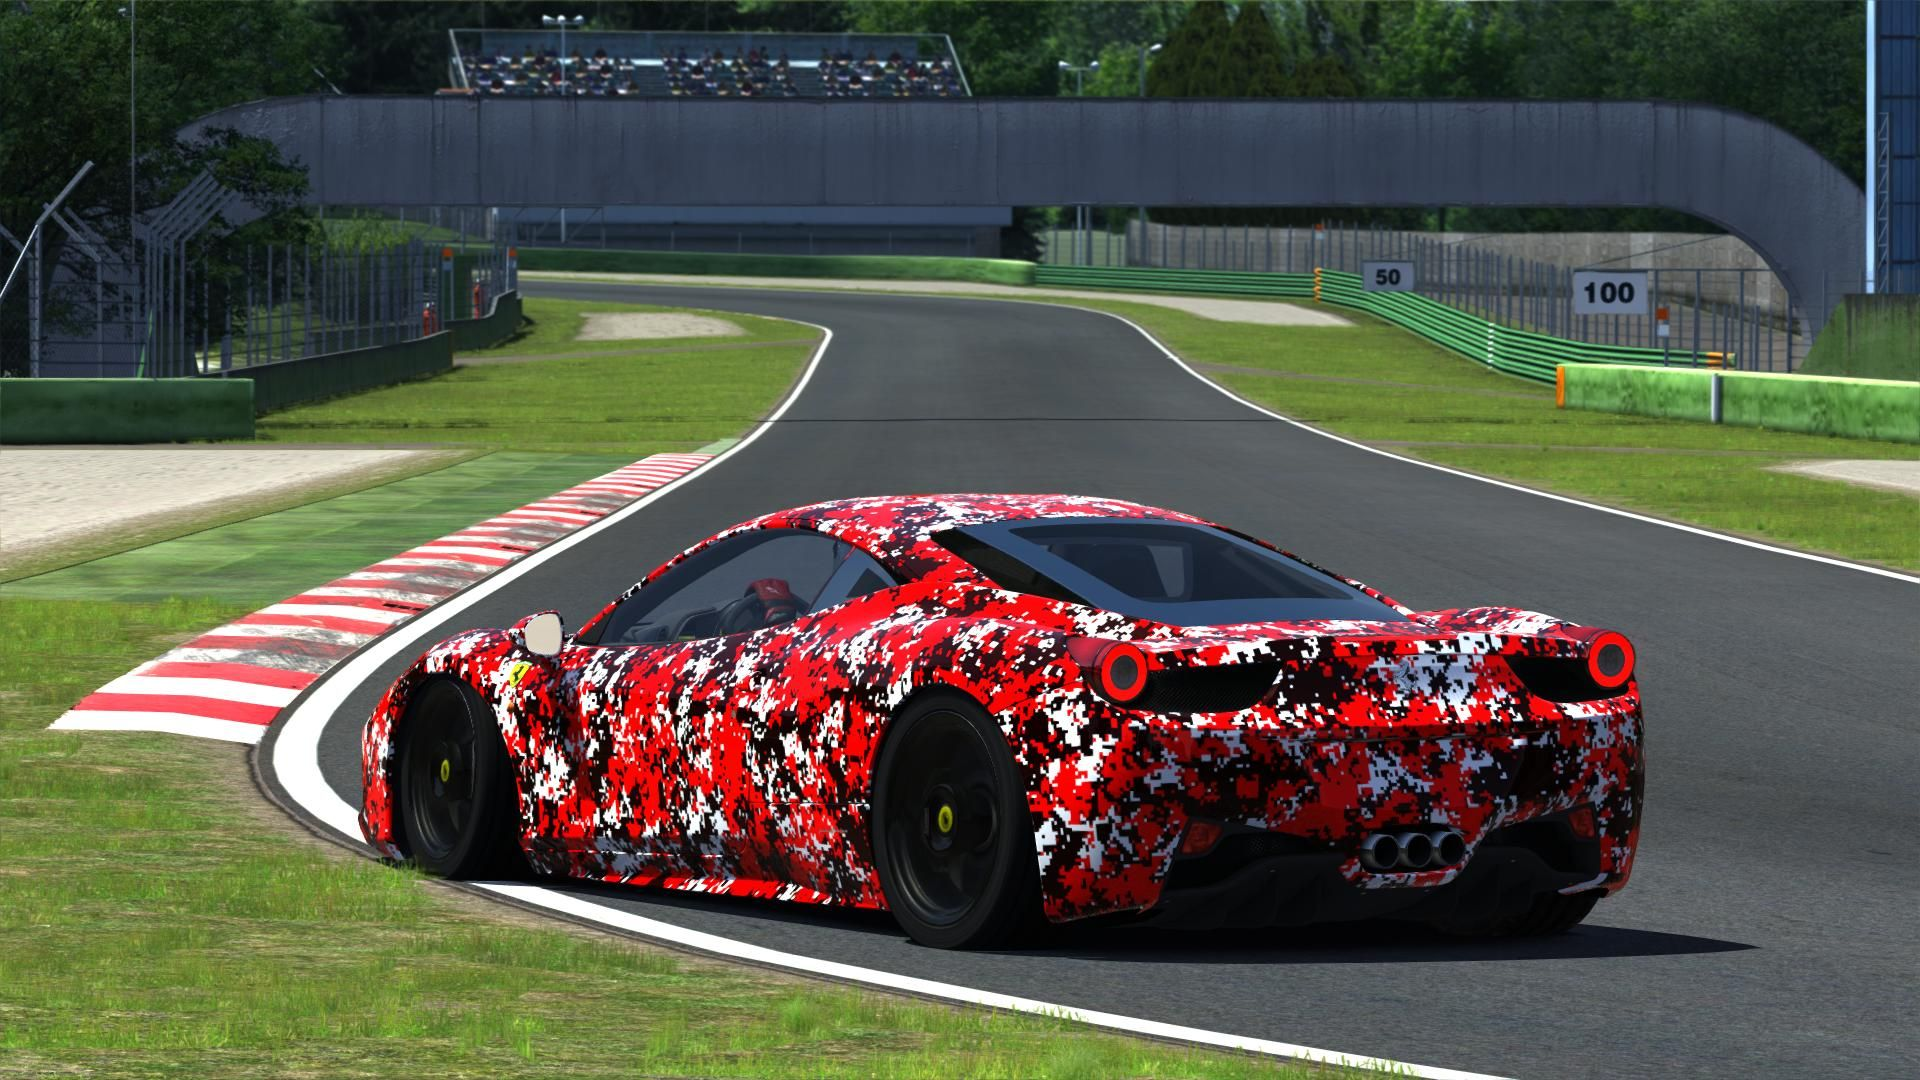 Assetto-Corsa-Free-Game-Features